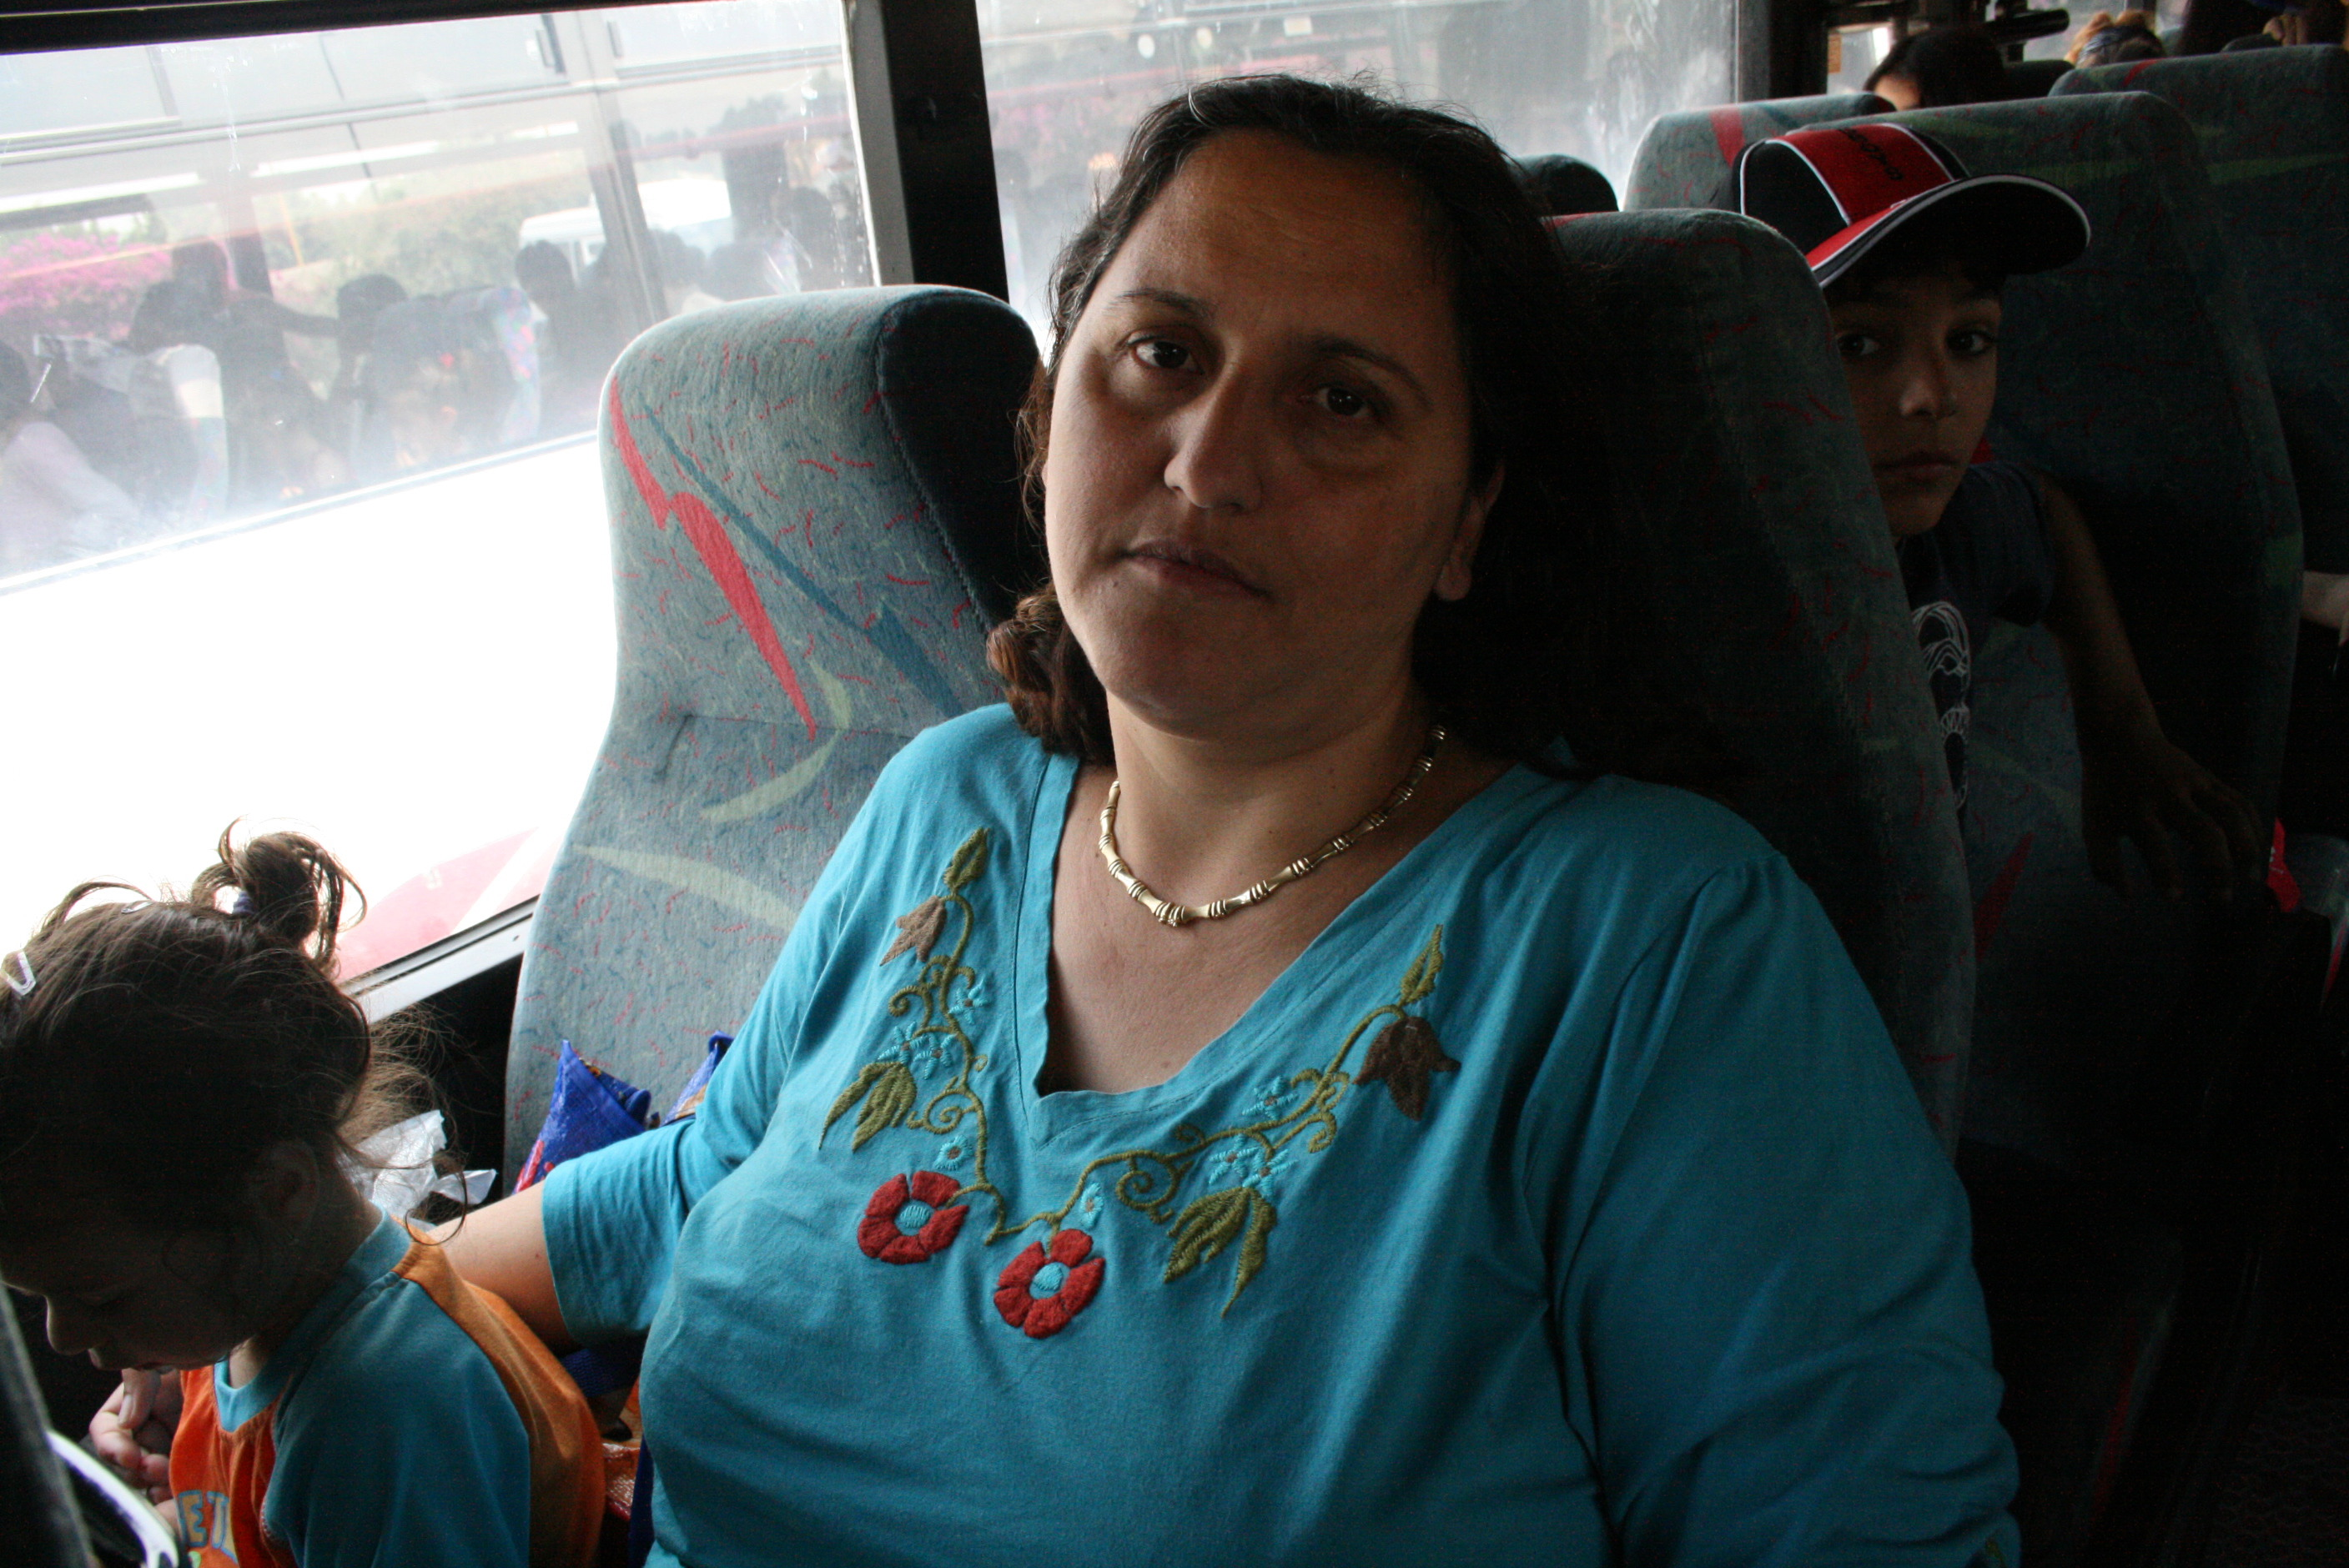 Yael Levi on a bus with her children Sderot, OPT/Israel, May 2007. She says she would like to leave Sderot, the target of rocket attacks from the Gaza Strip, for the sake of her children.